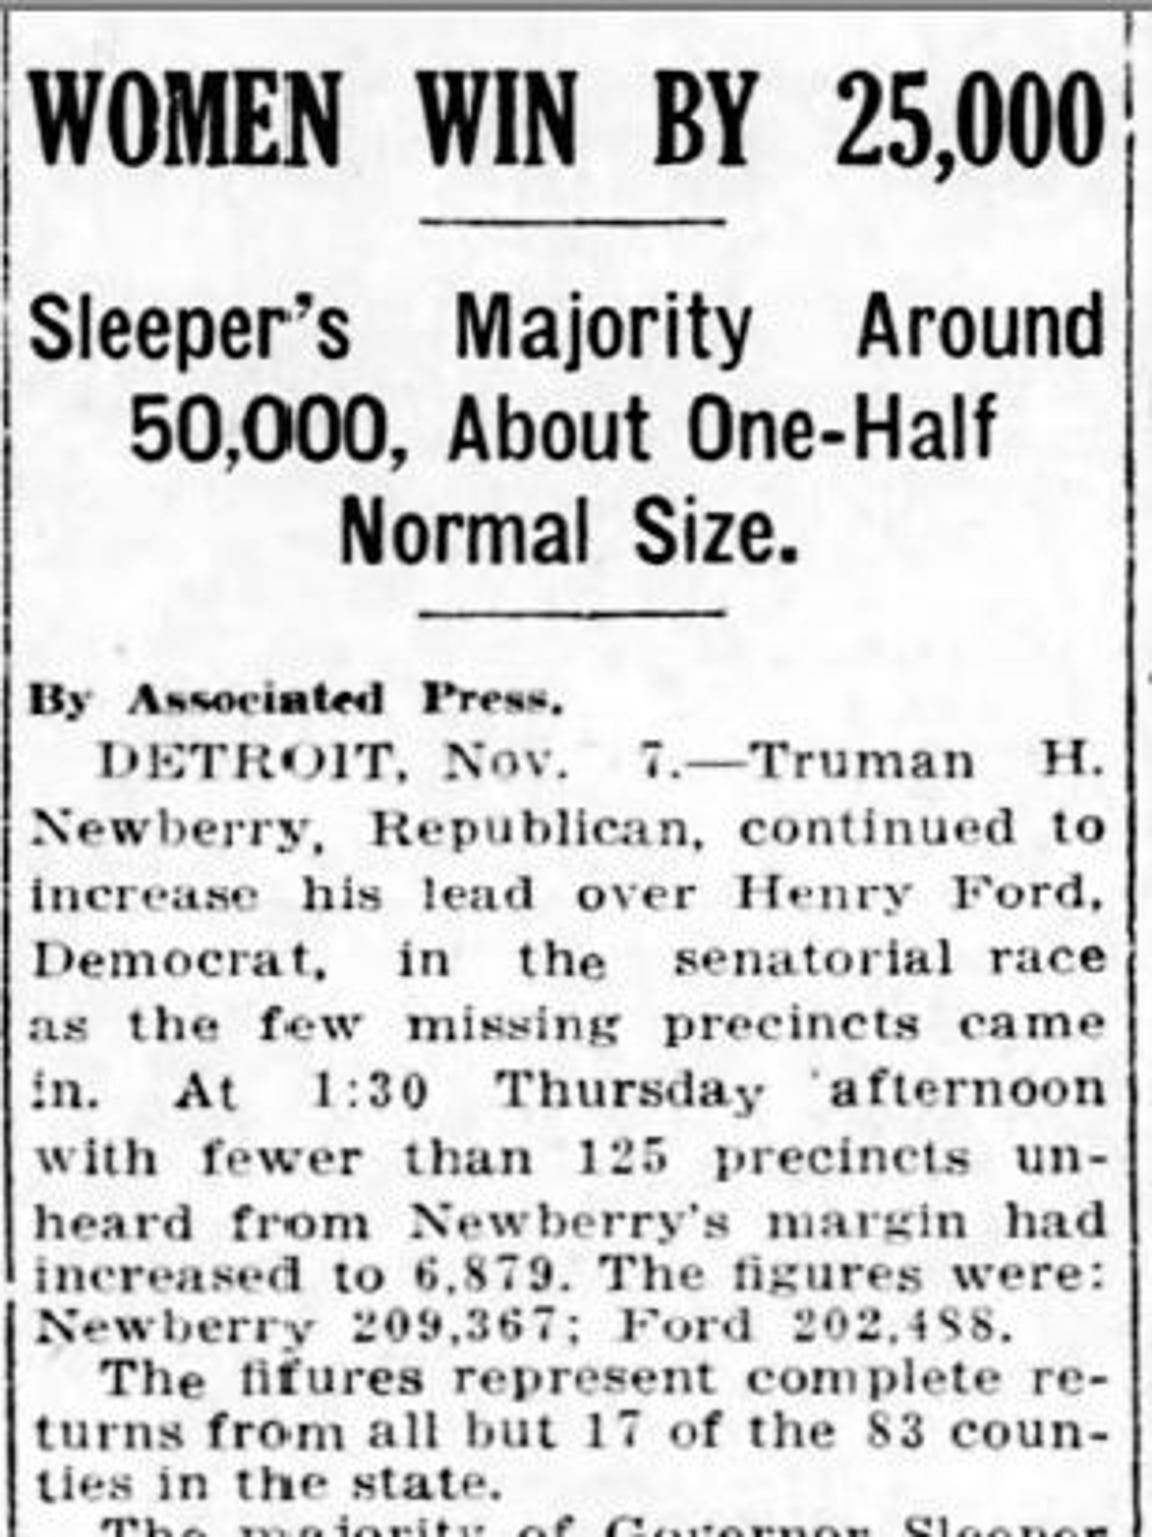 This clipping from the Nov. 7, 1918 Lansing State Journal